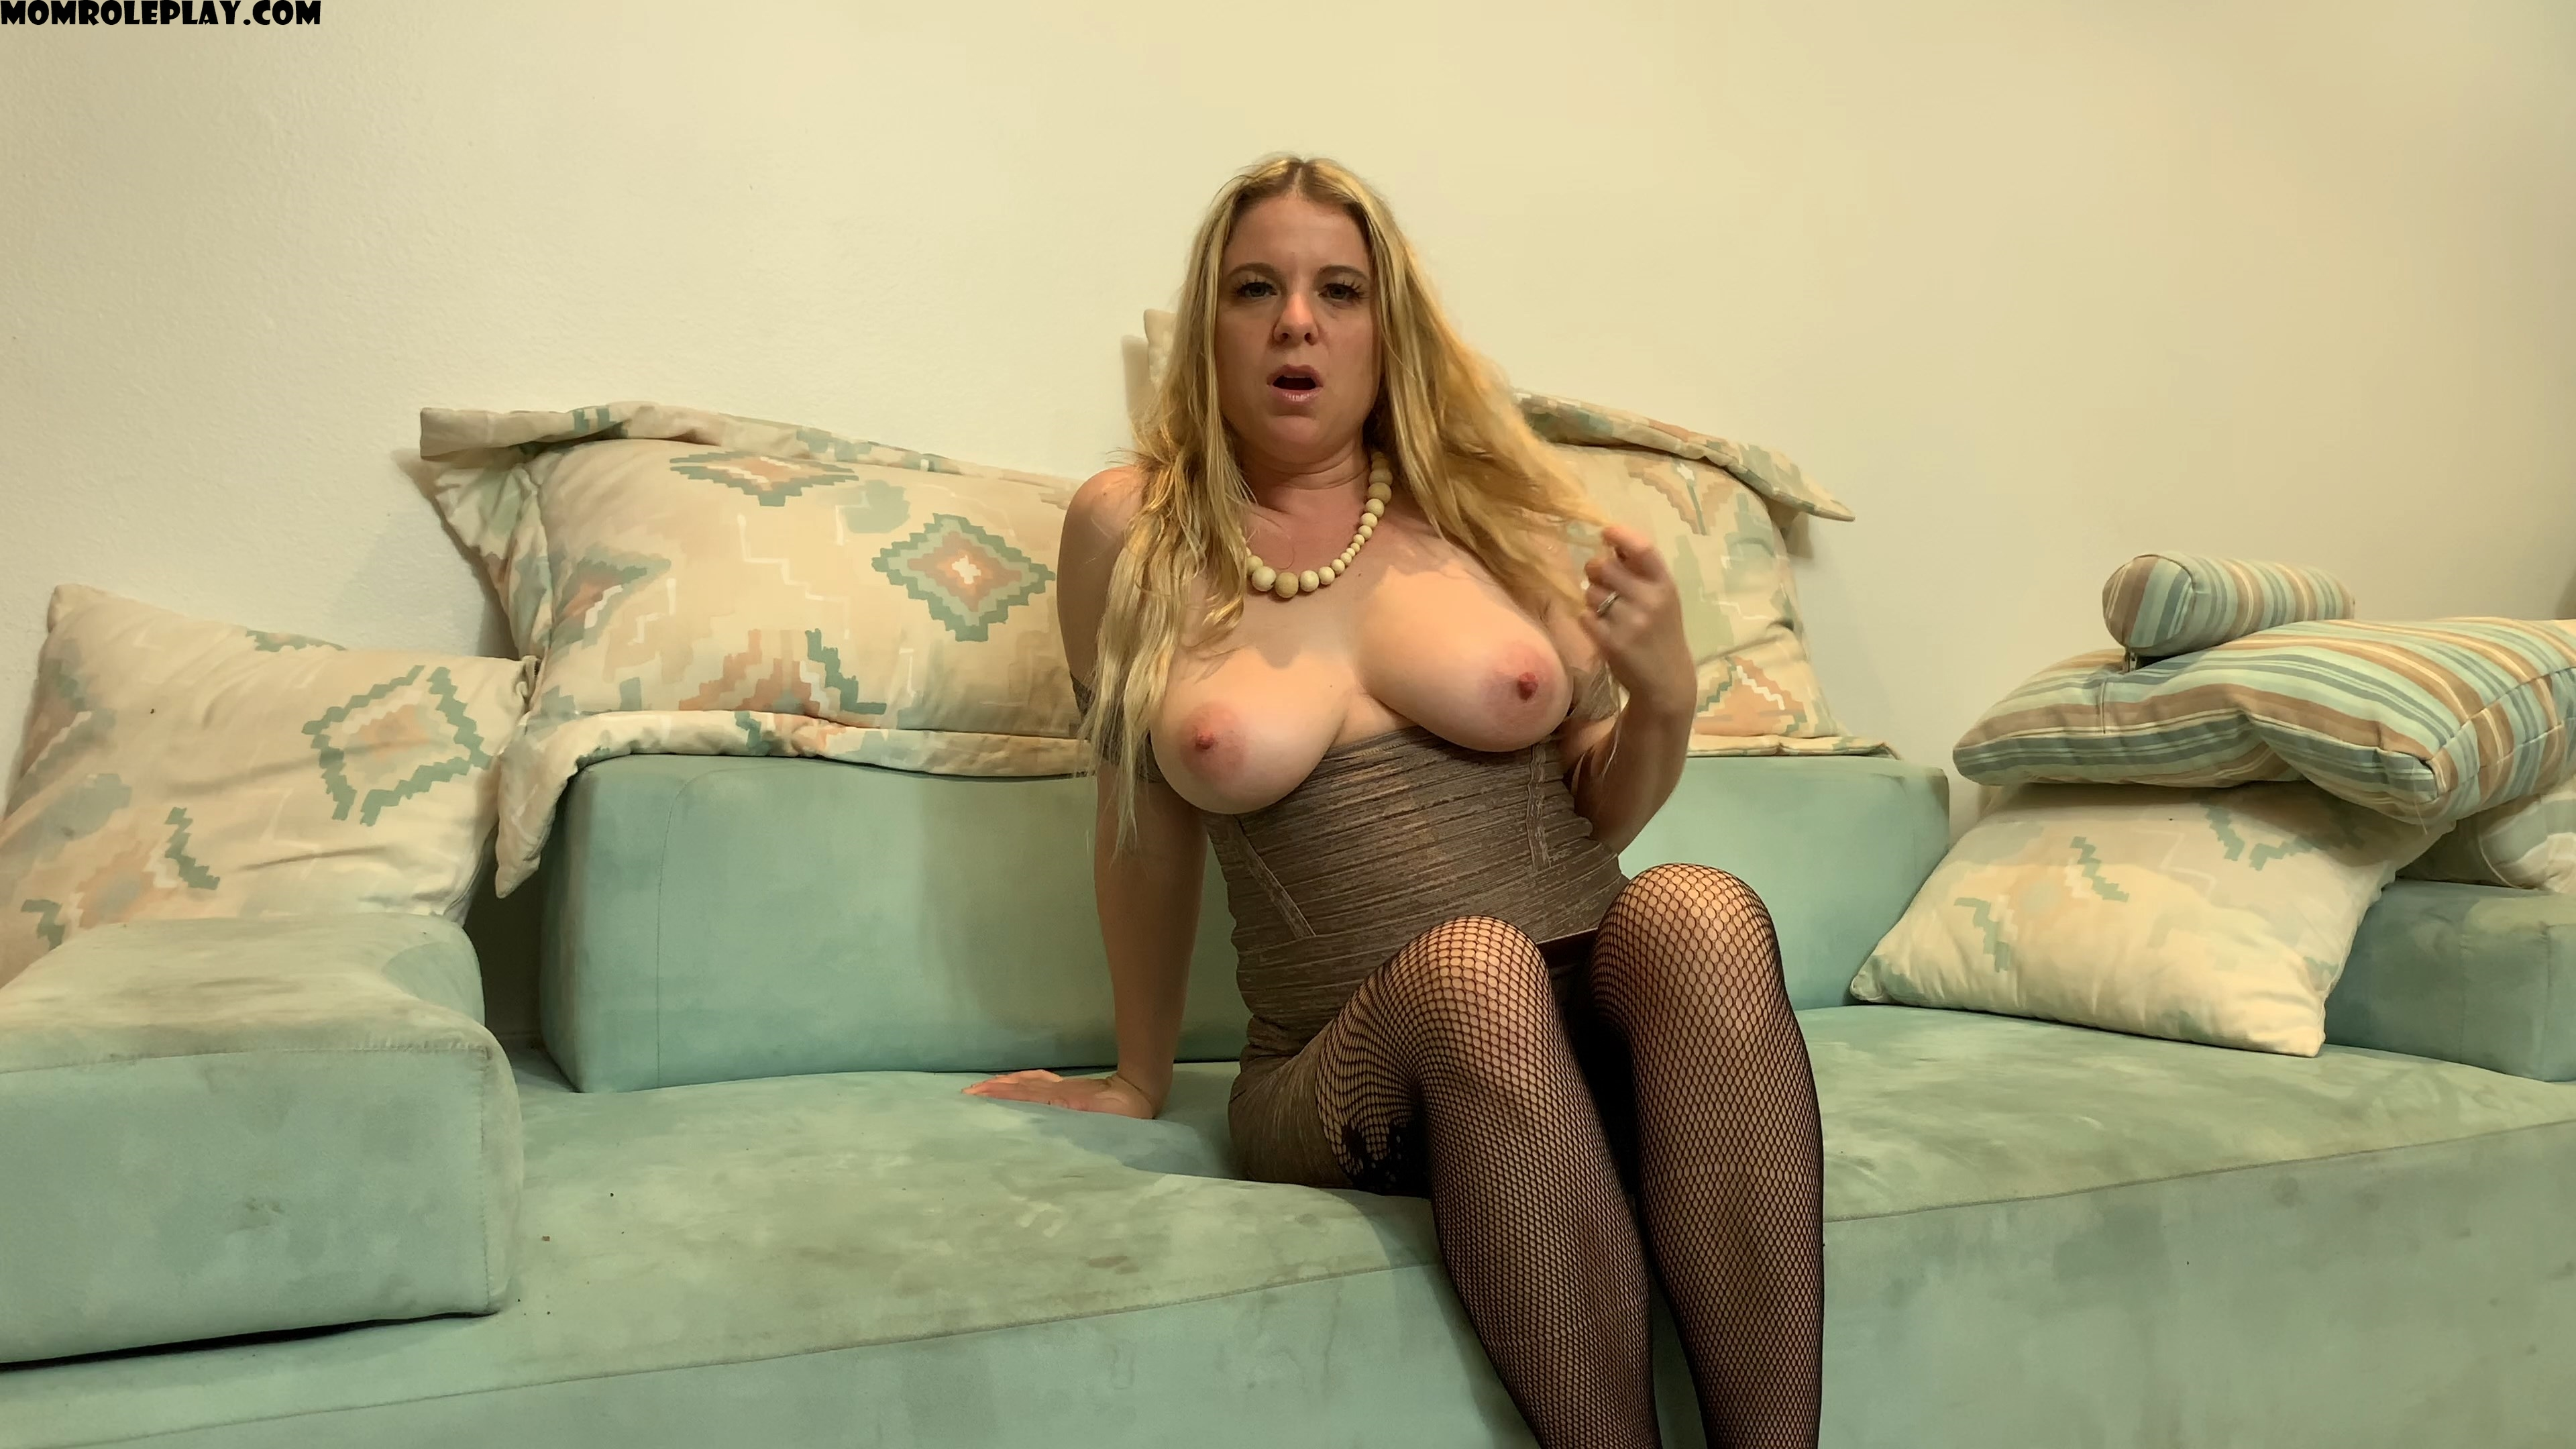 Erin Electra - Caring stepmom dirty talks JOI Solo POV